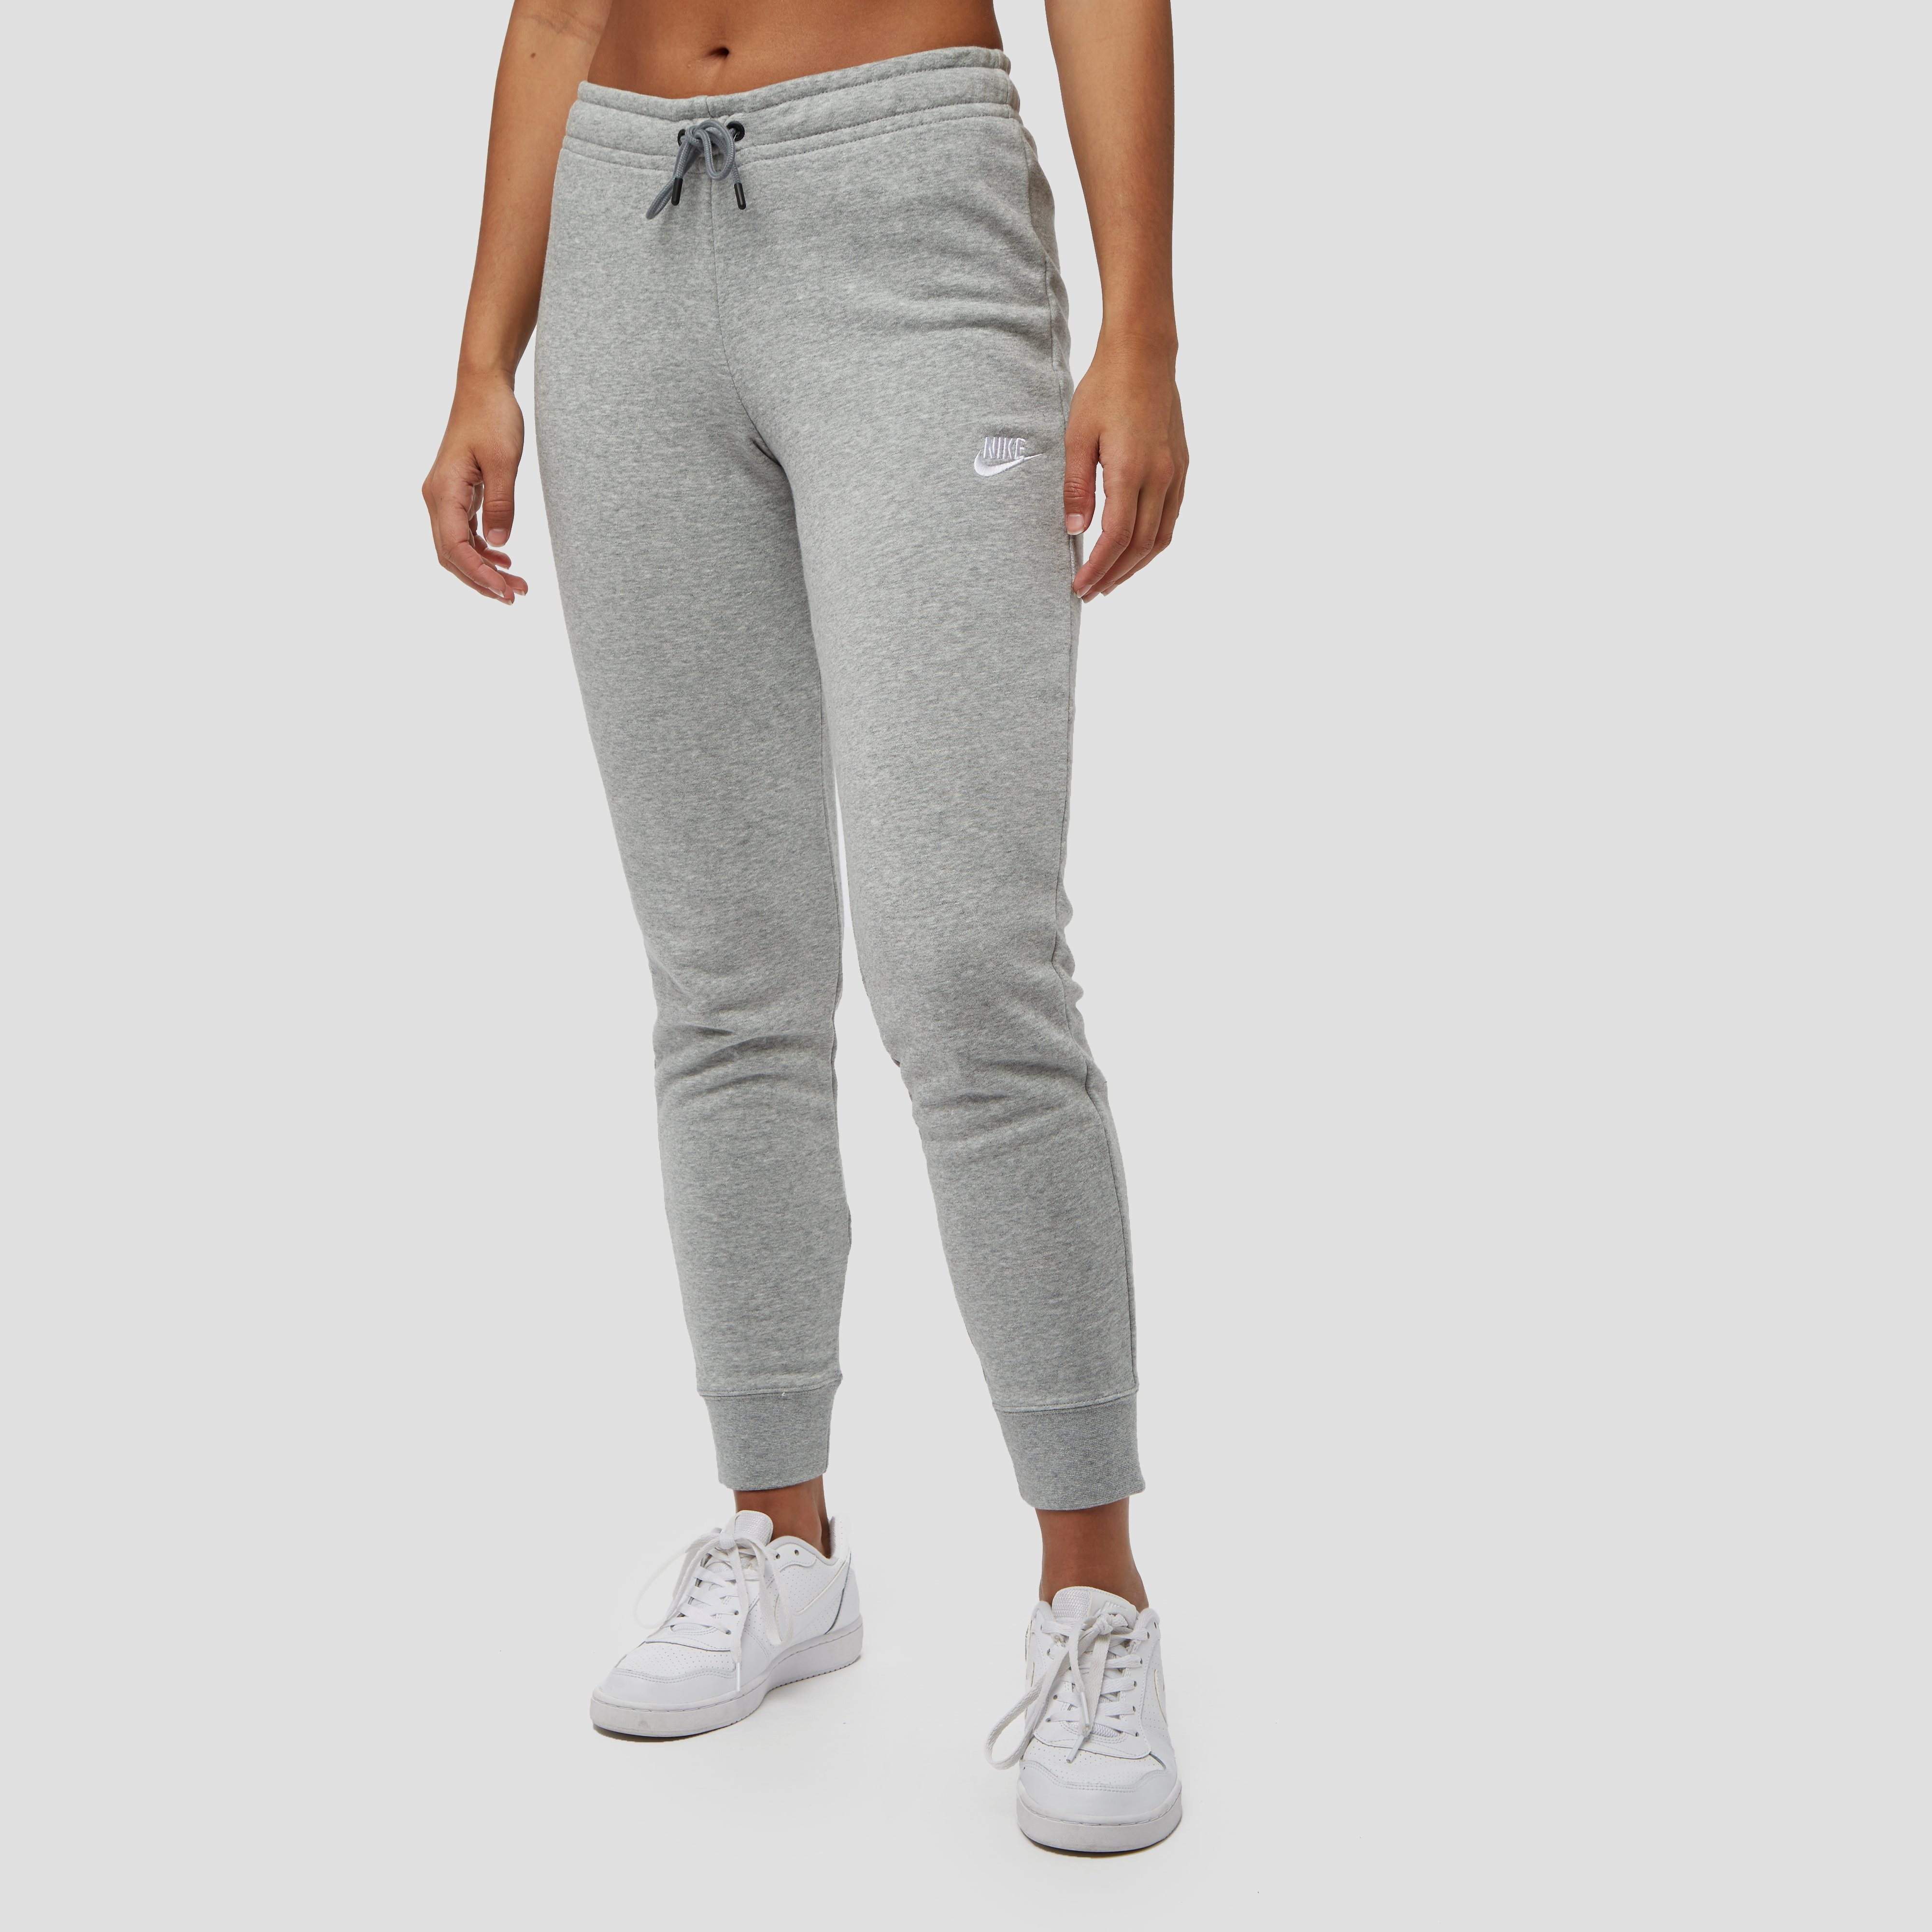 NIKE SPORTSWEAR ESSENTIALS JOGGINGBROEK GRIJS DAMES | Perrysport